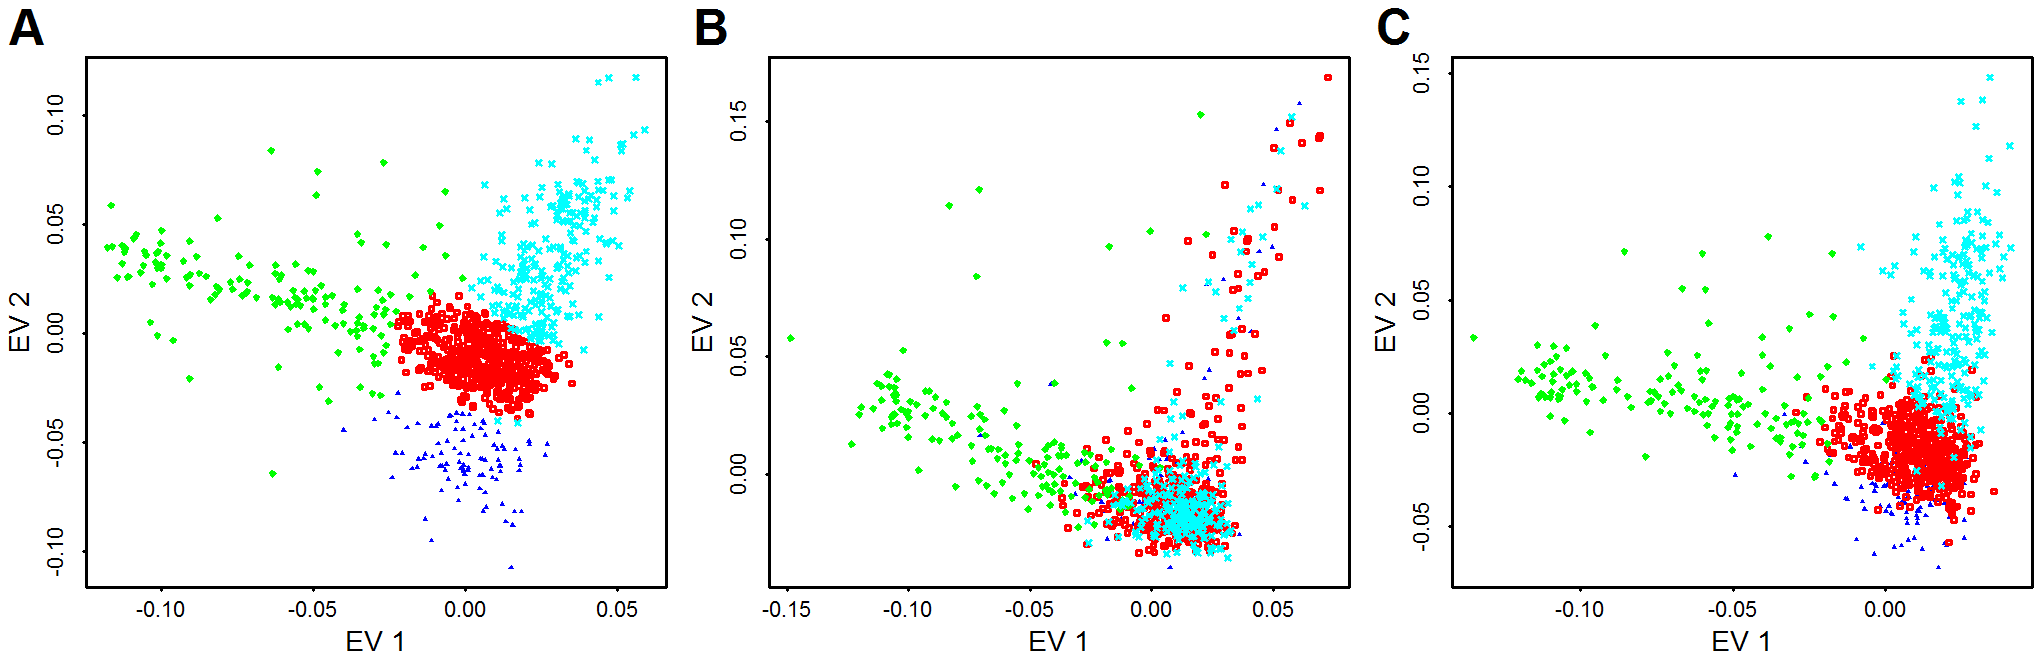 PCA from common variants, low frequency variants, and both types of variants.